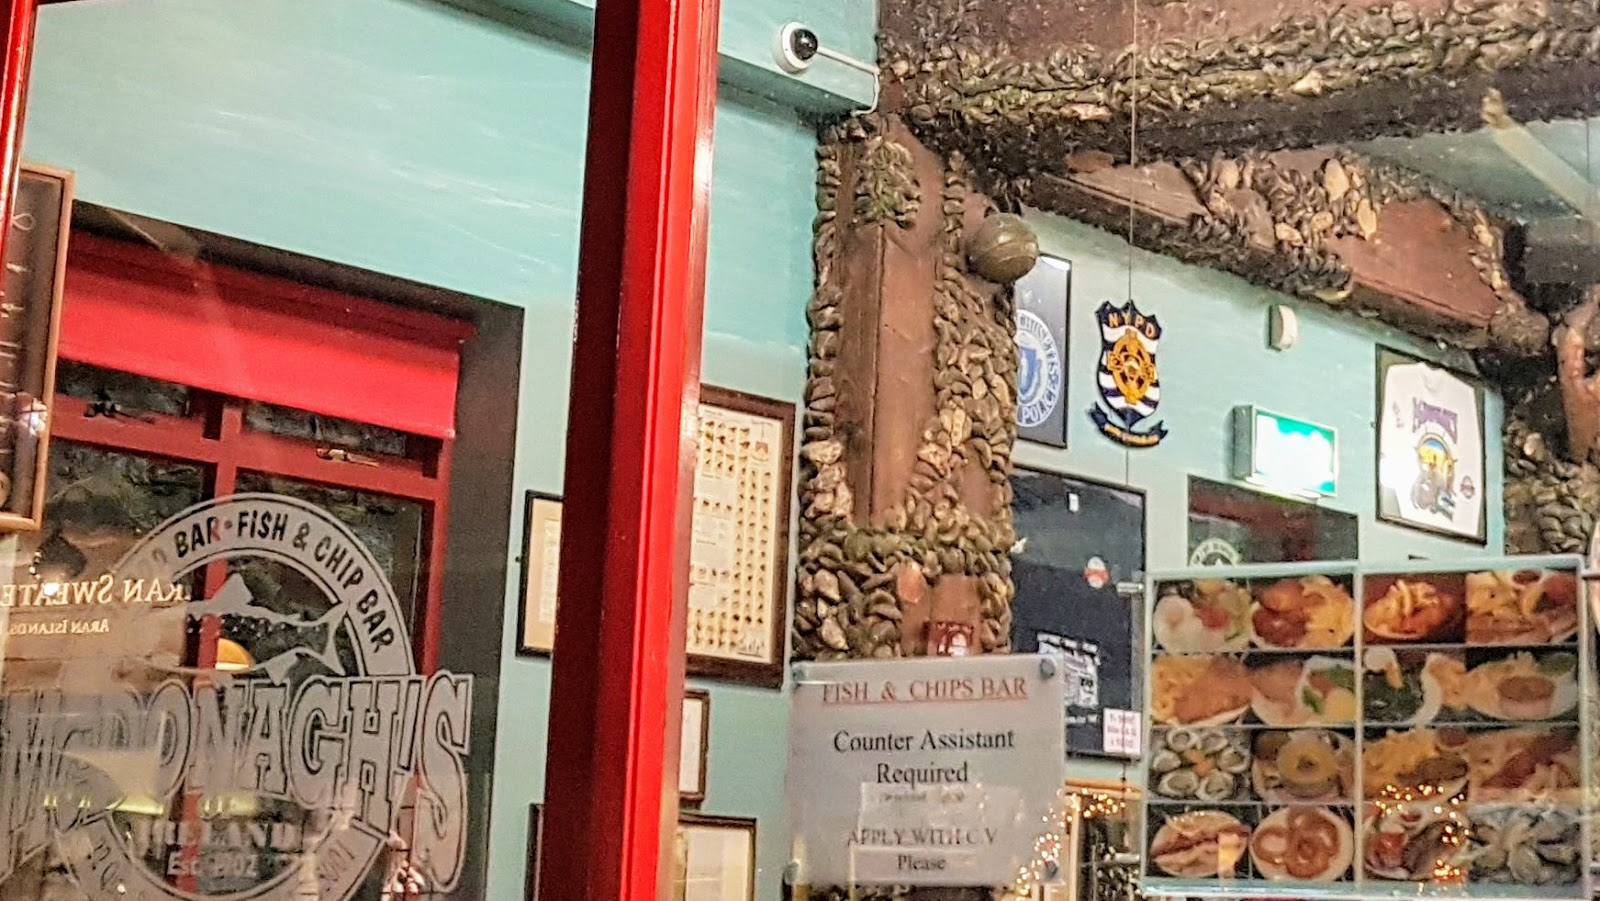 view into a fish and chip shop with fake barnacle-encrusted beams